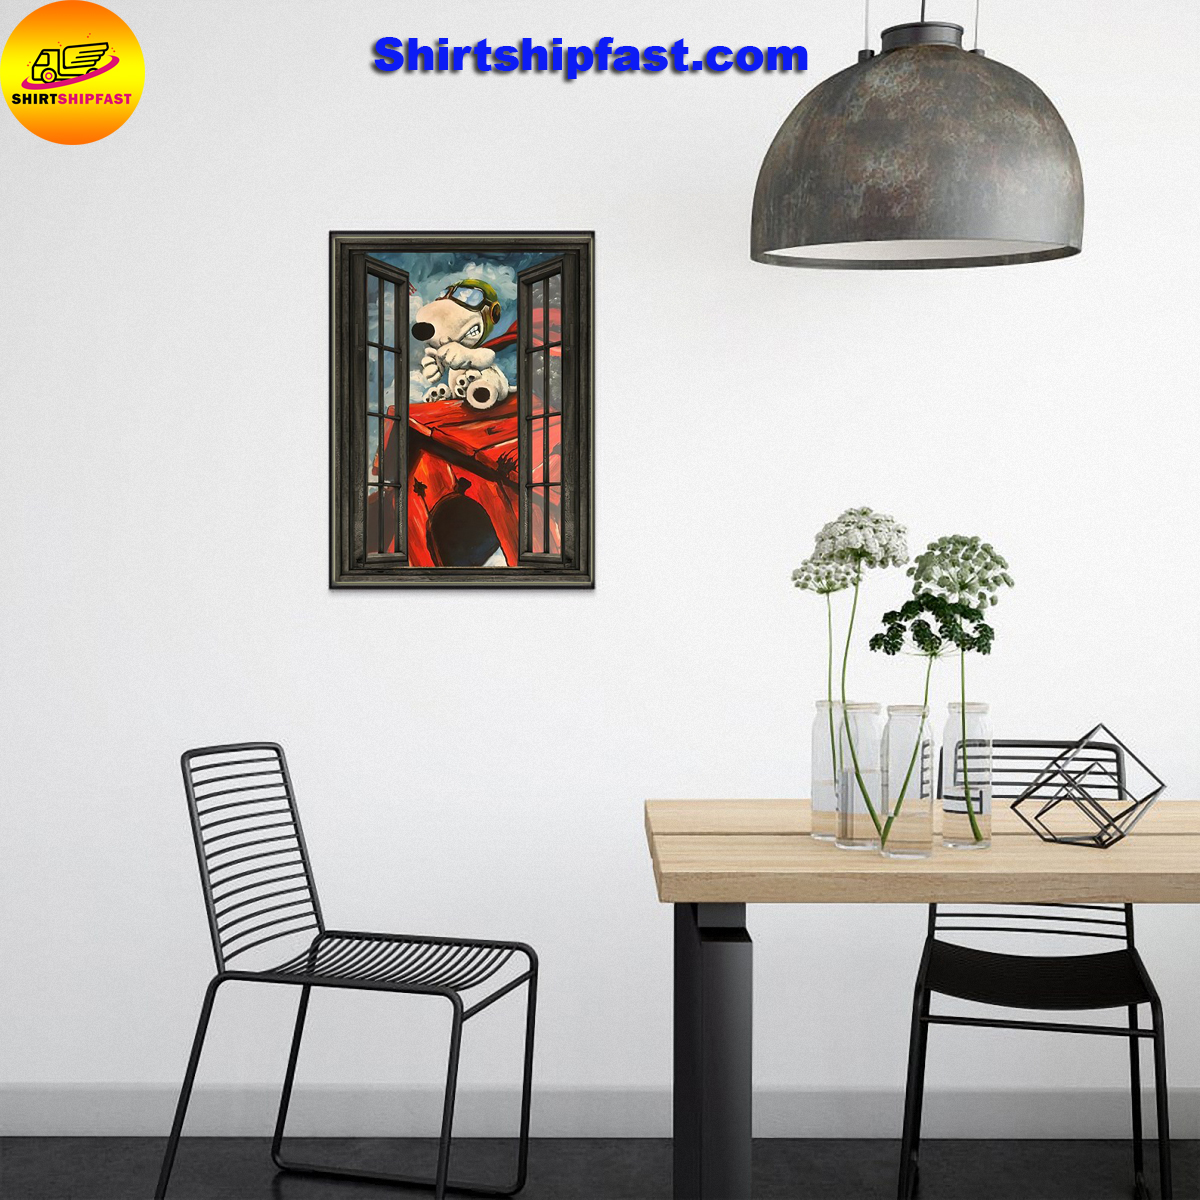 Snoopy flying ace window poster